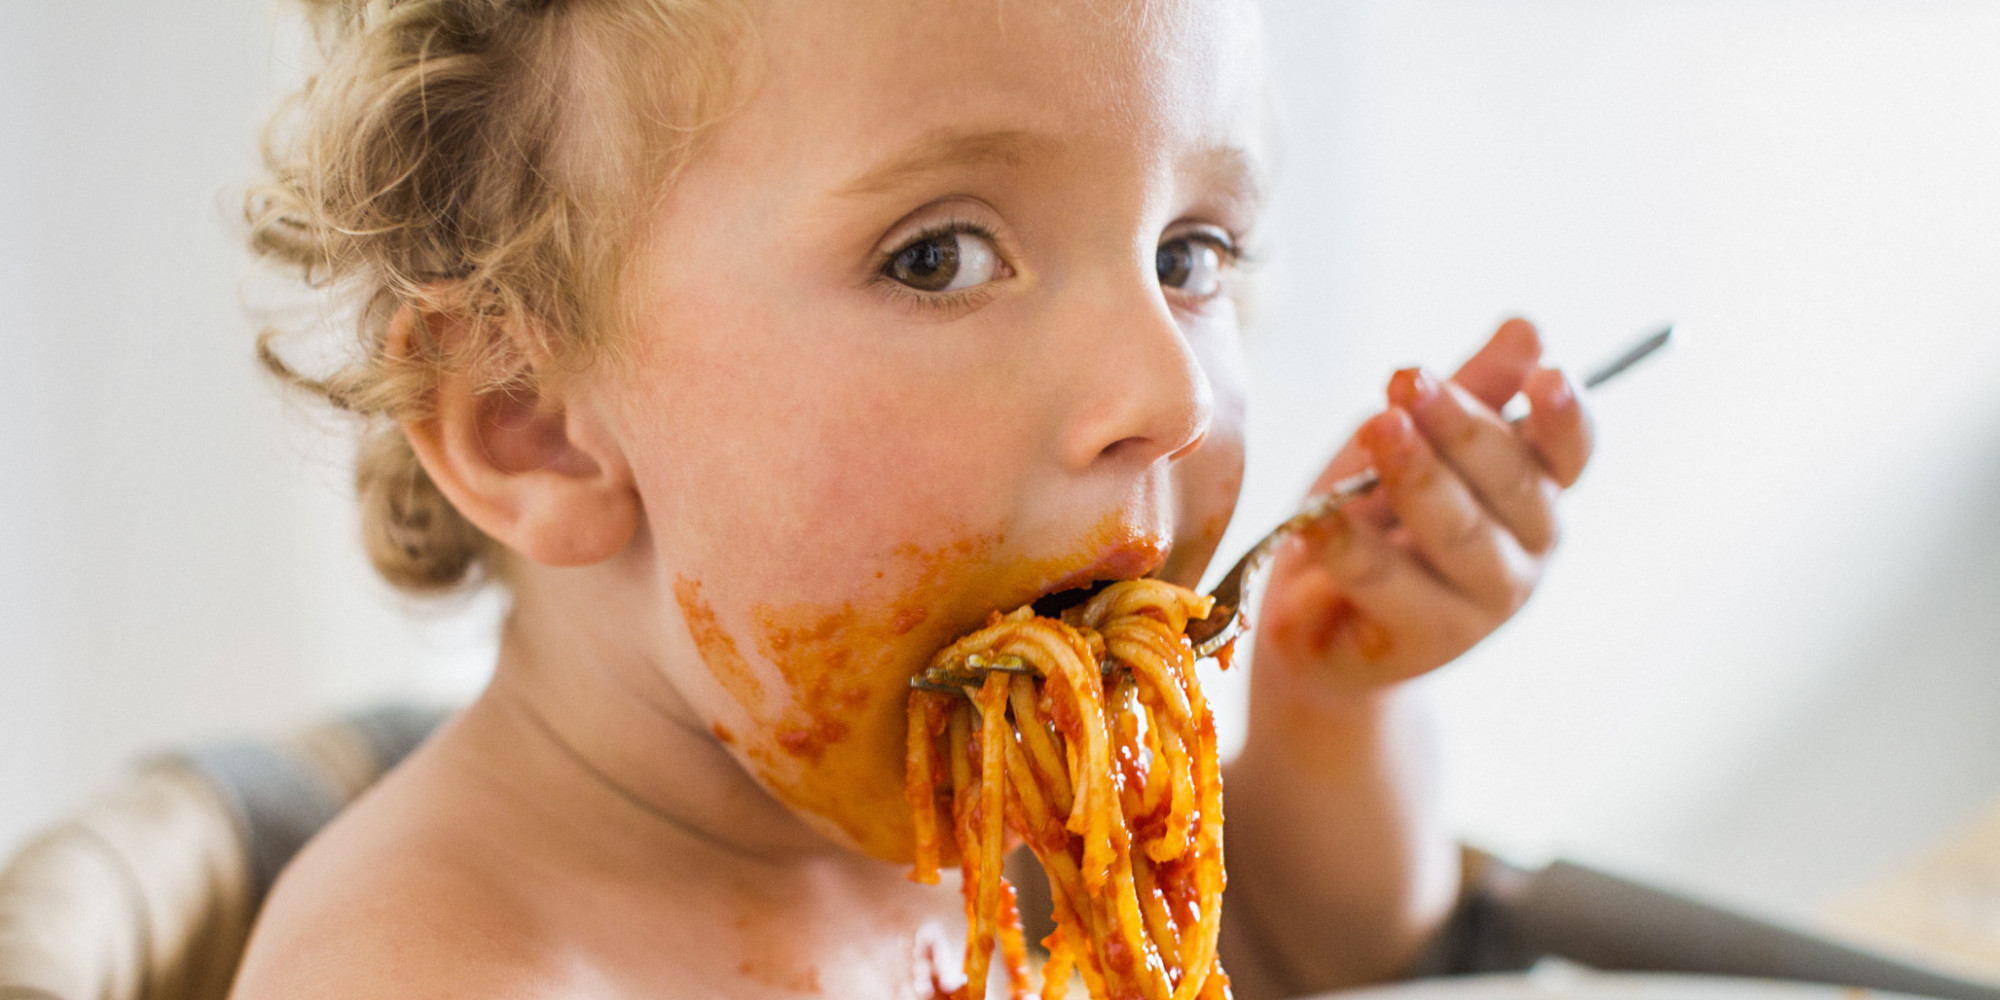 Young toddler boy eating messy pasta